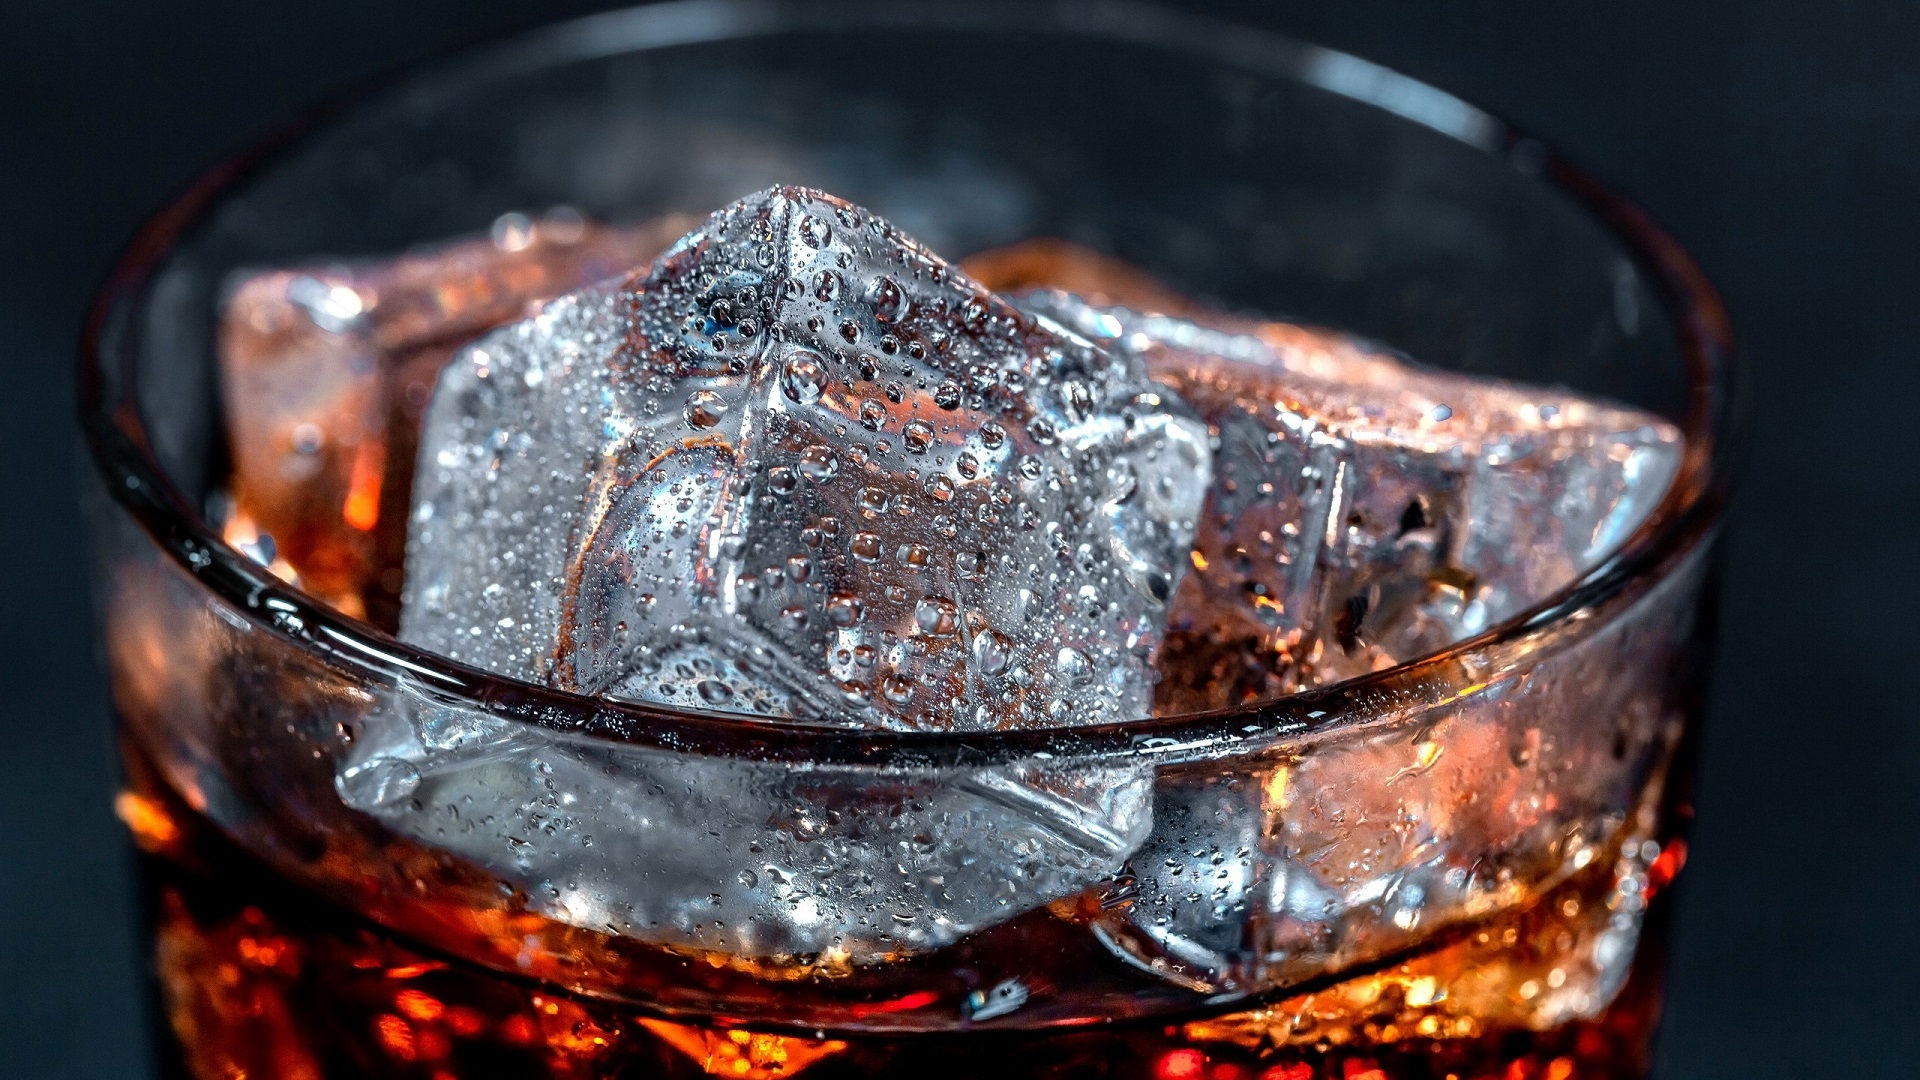 wallpaper of food drink ice background amp hd image